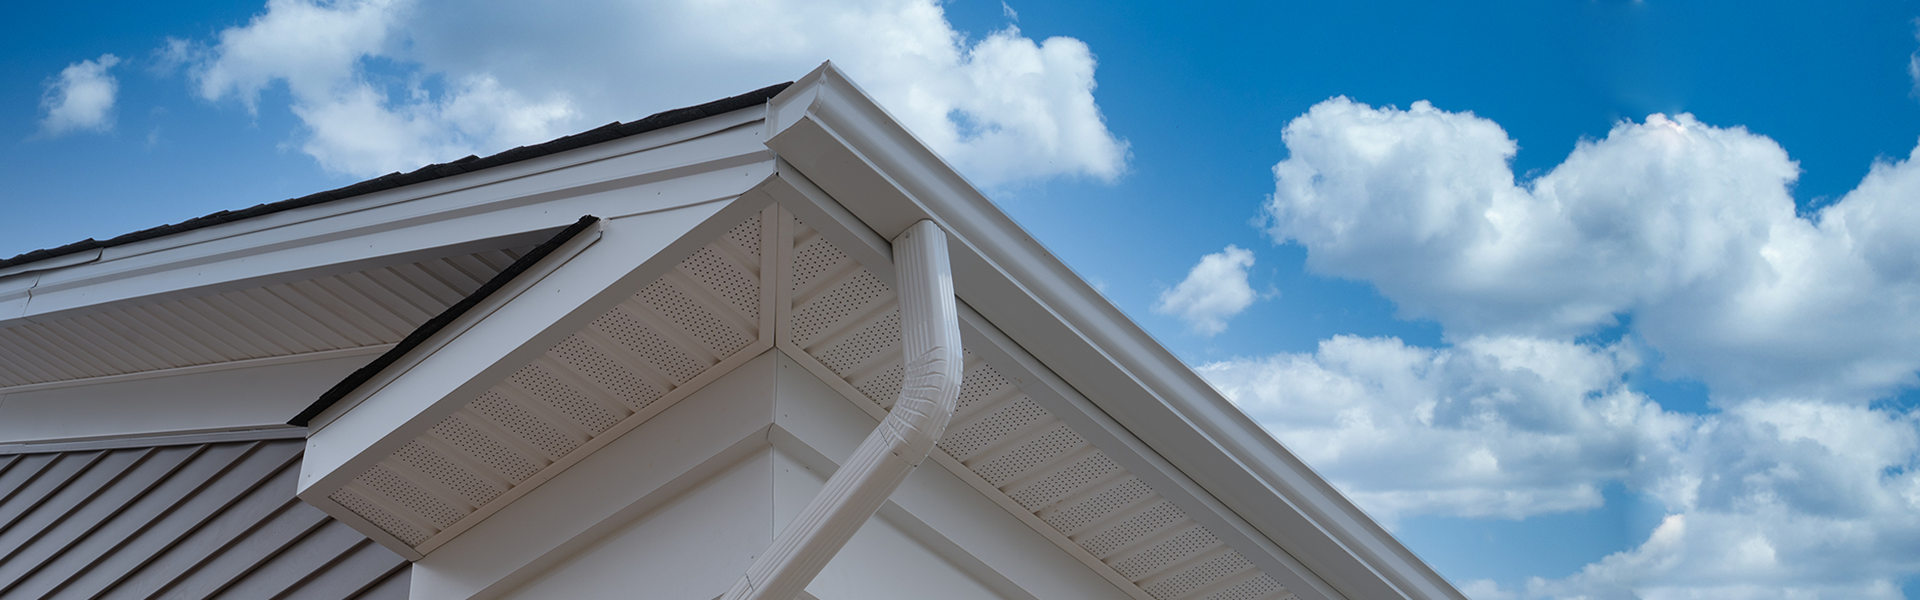 altitude-roofing-siding-windows-steel-roofing-services-wi_0004_gutters